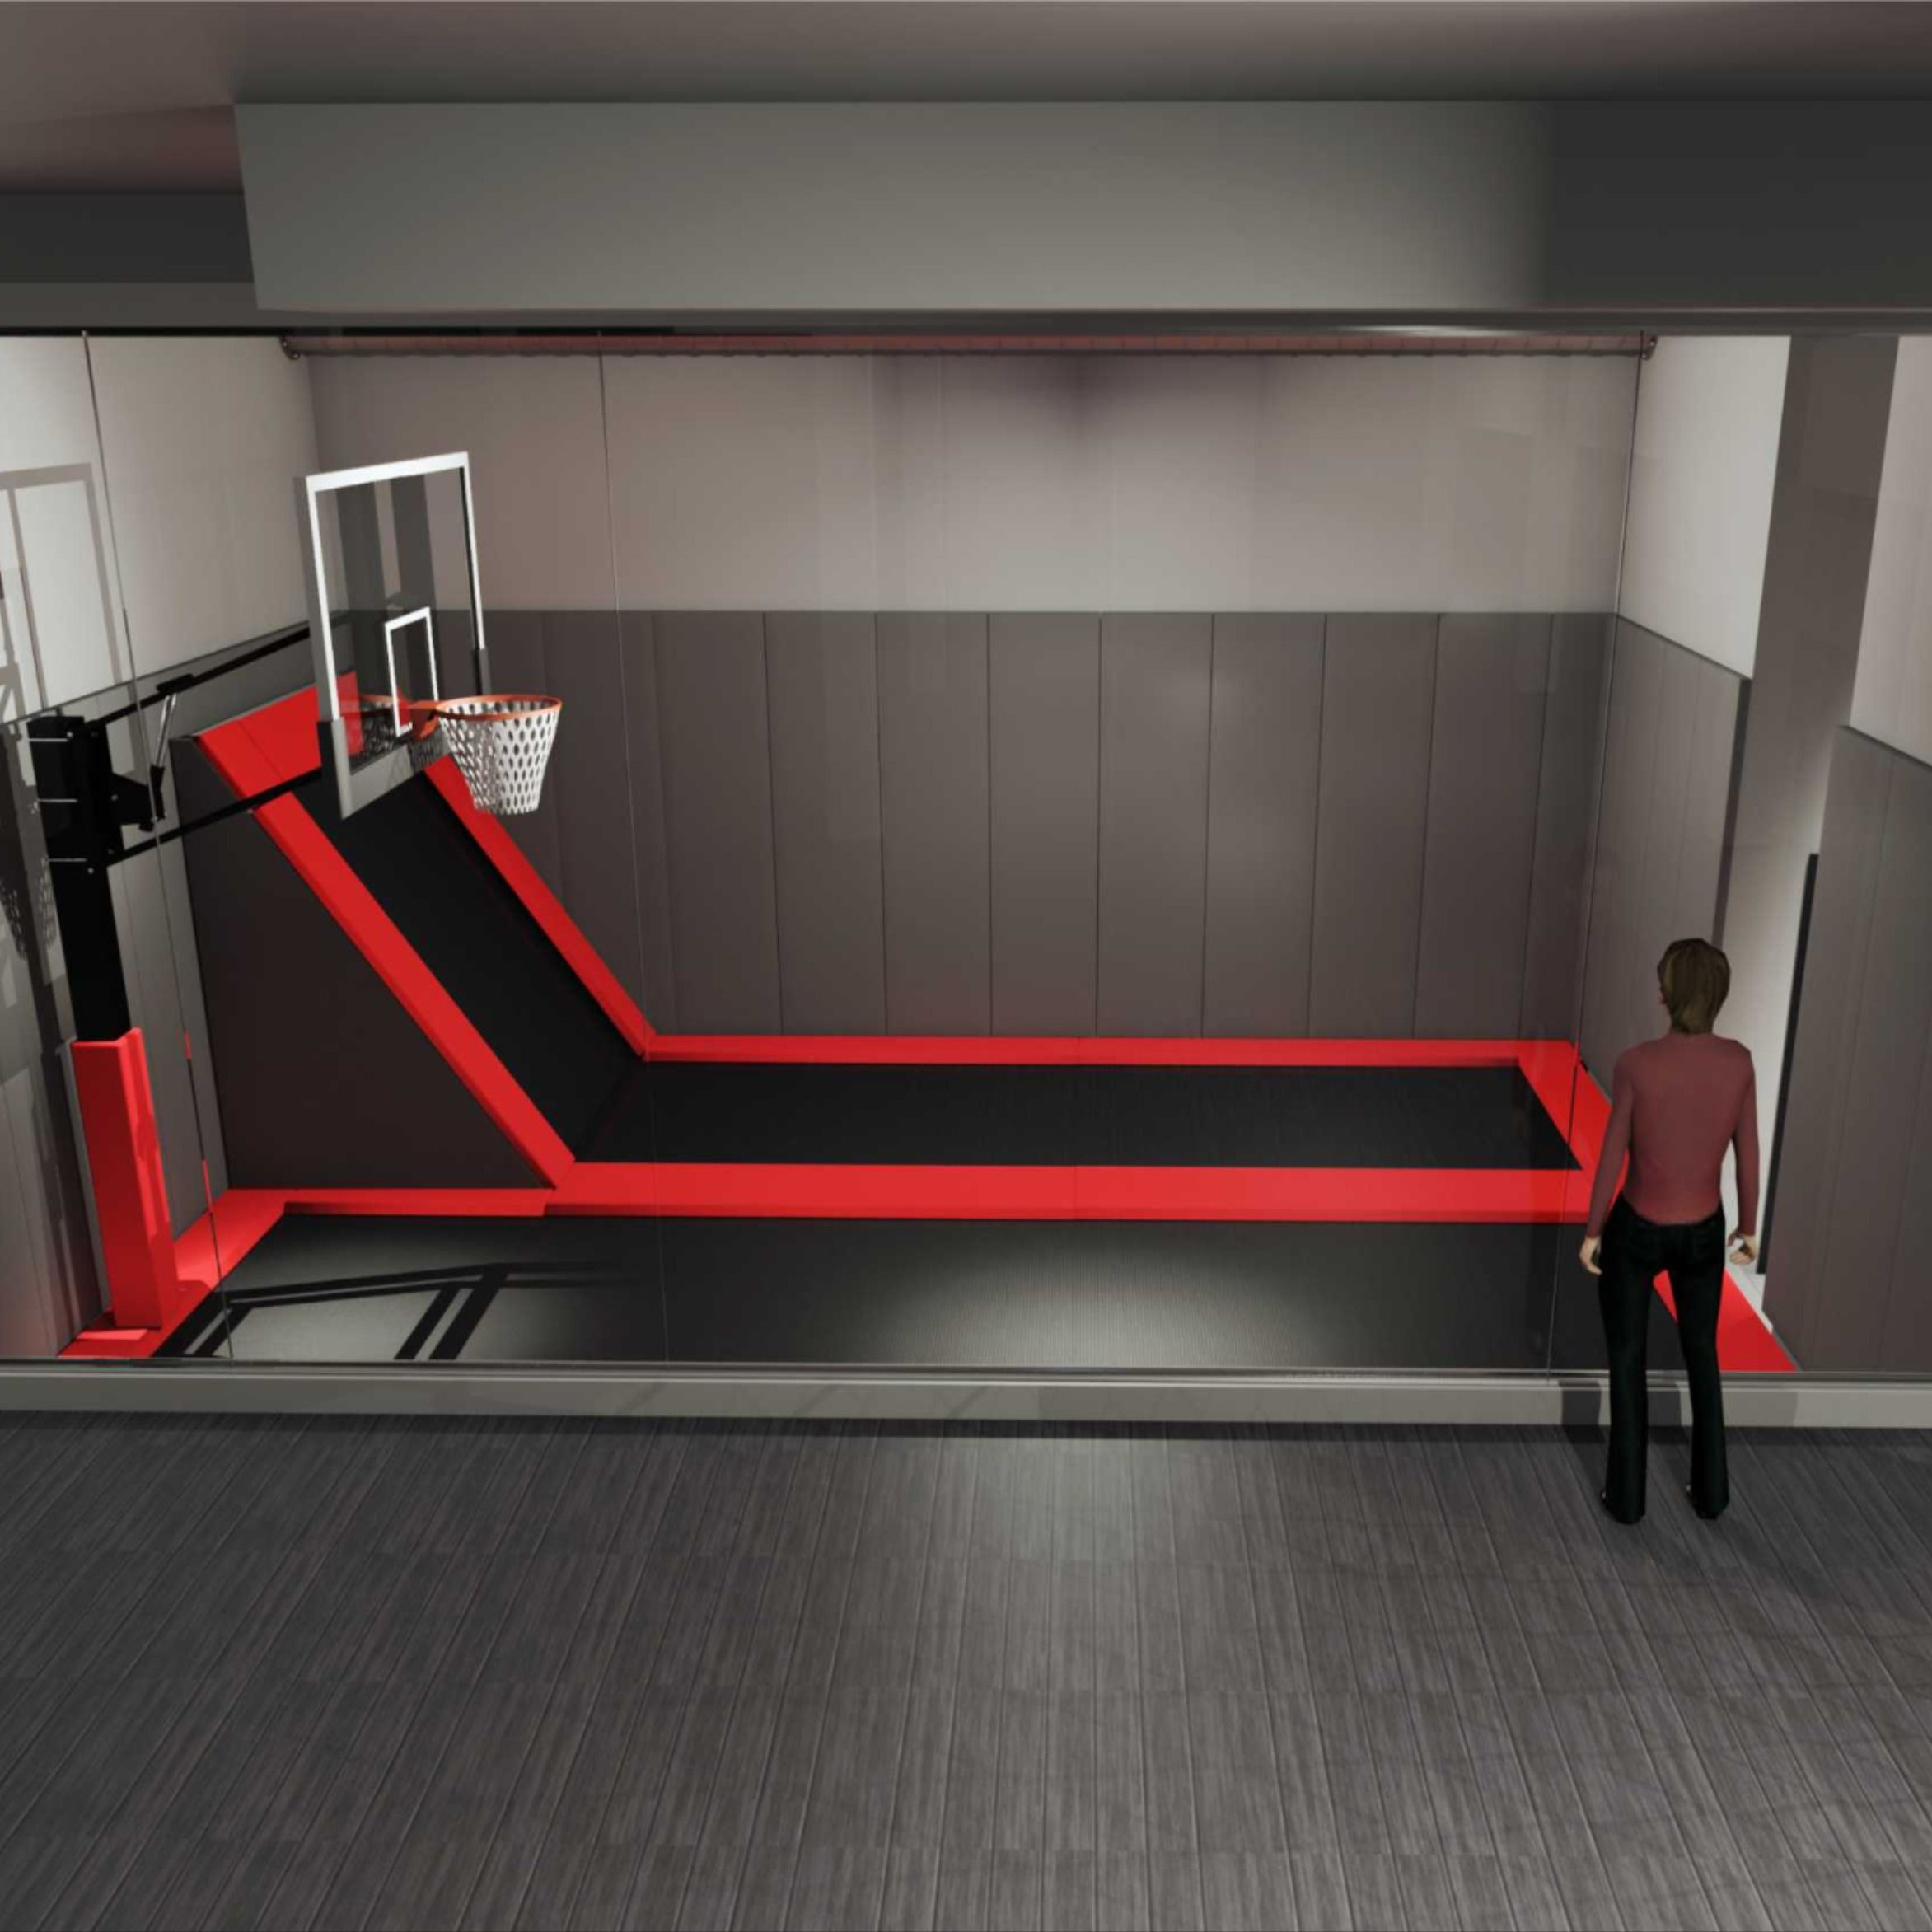 Step Up Your Trampoline Game With An Indoor Trampoline Basketball Court In Your Recreation Room Trampoline Room Indoor Trampoline Dream Rooms